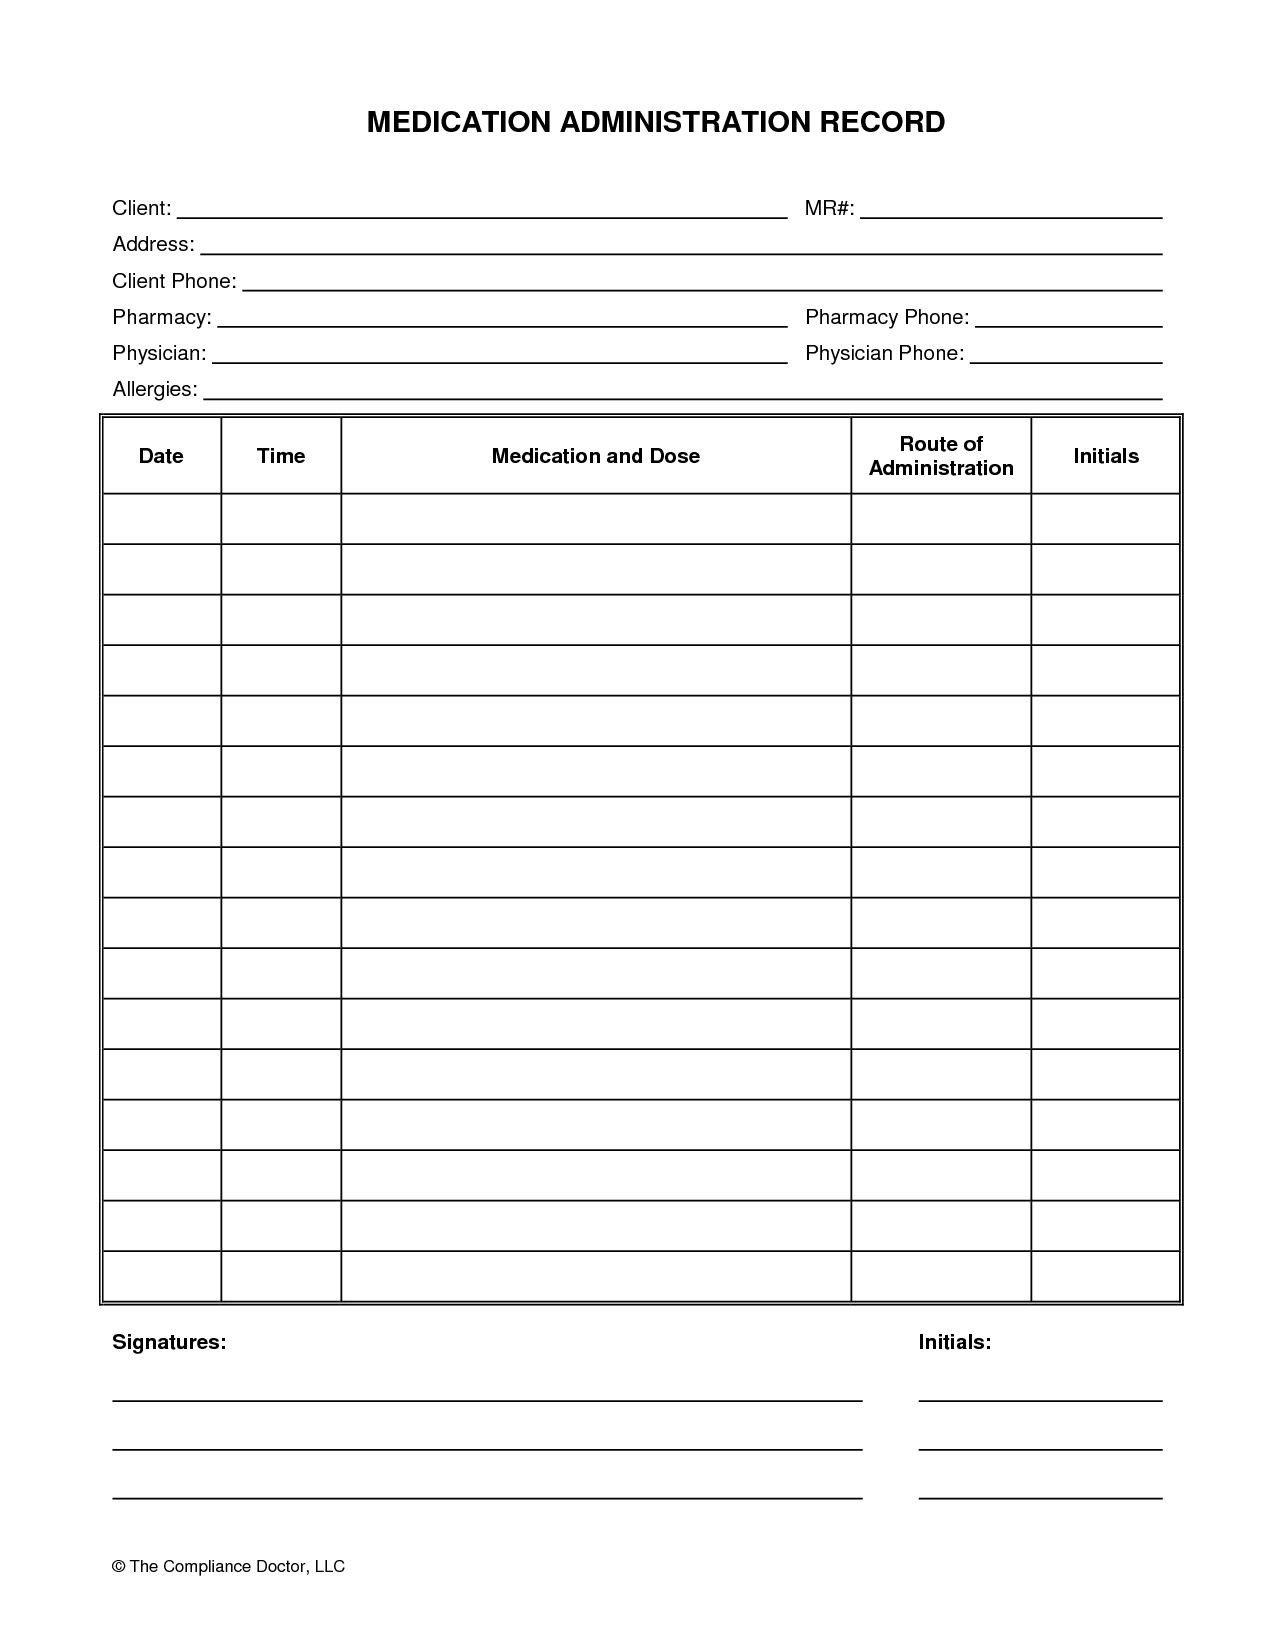 Medication Administration Record Form | Organization | Pinterest - Free Printable Forms For Organizing